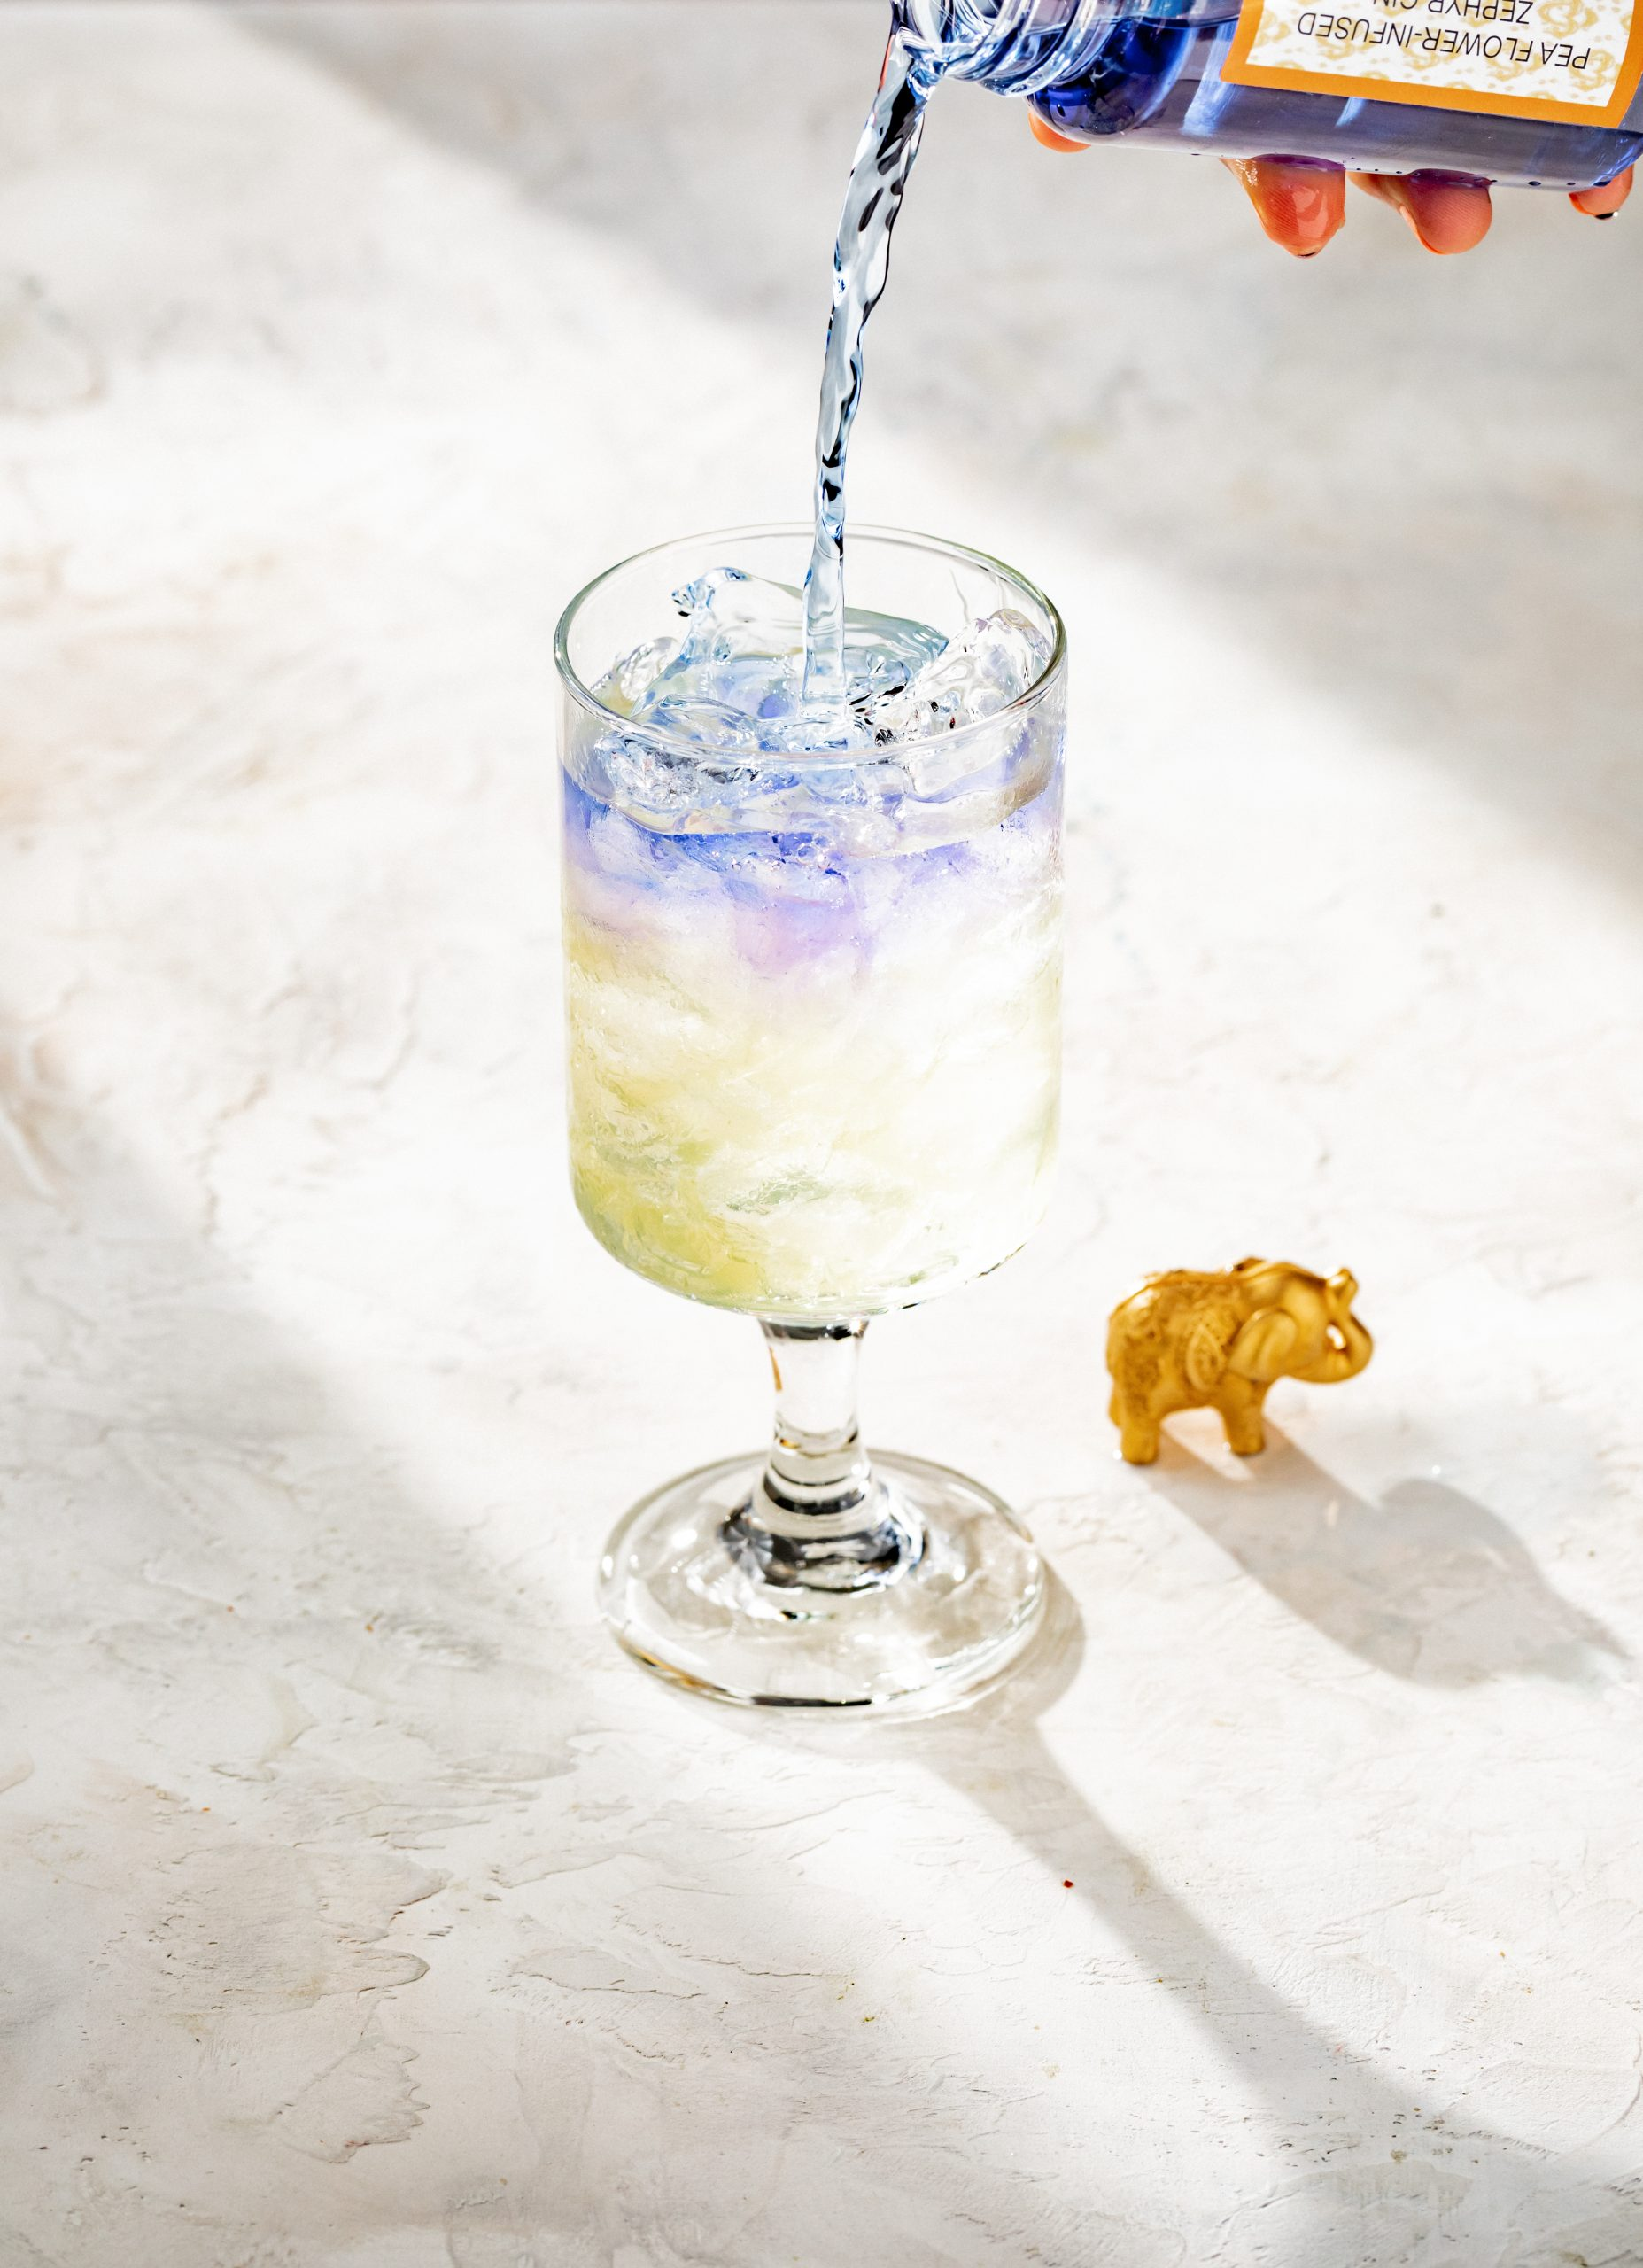 A blue colored beverage being poured into a glass with ice and a small elephant trinket on the table beside the glass